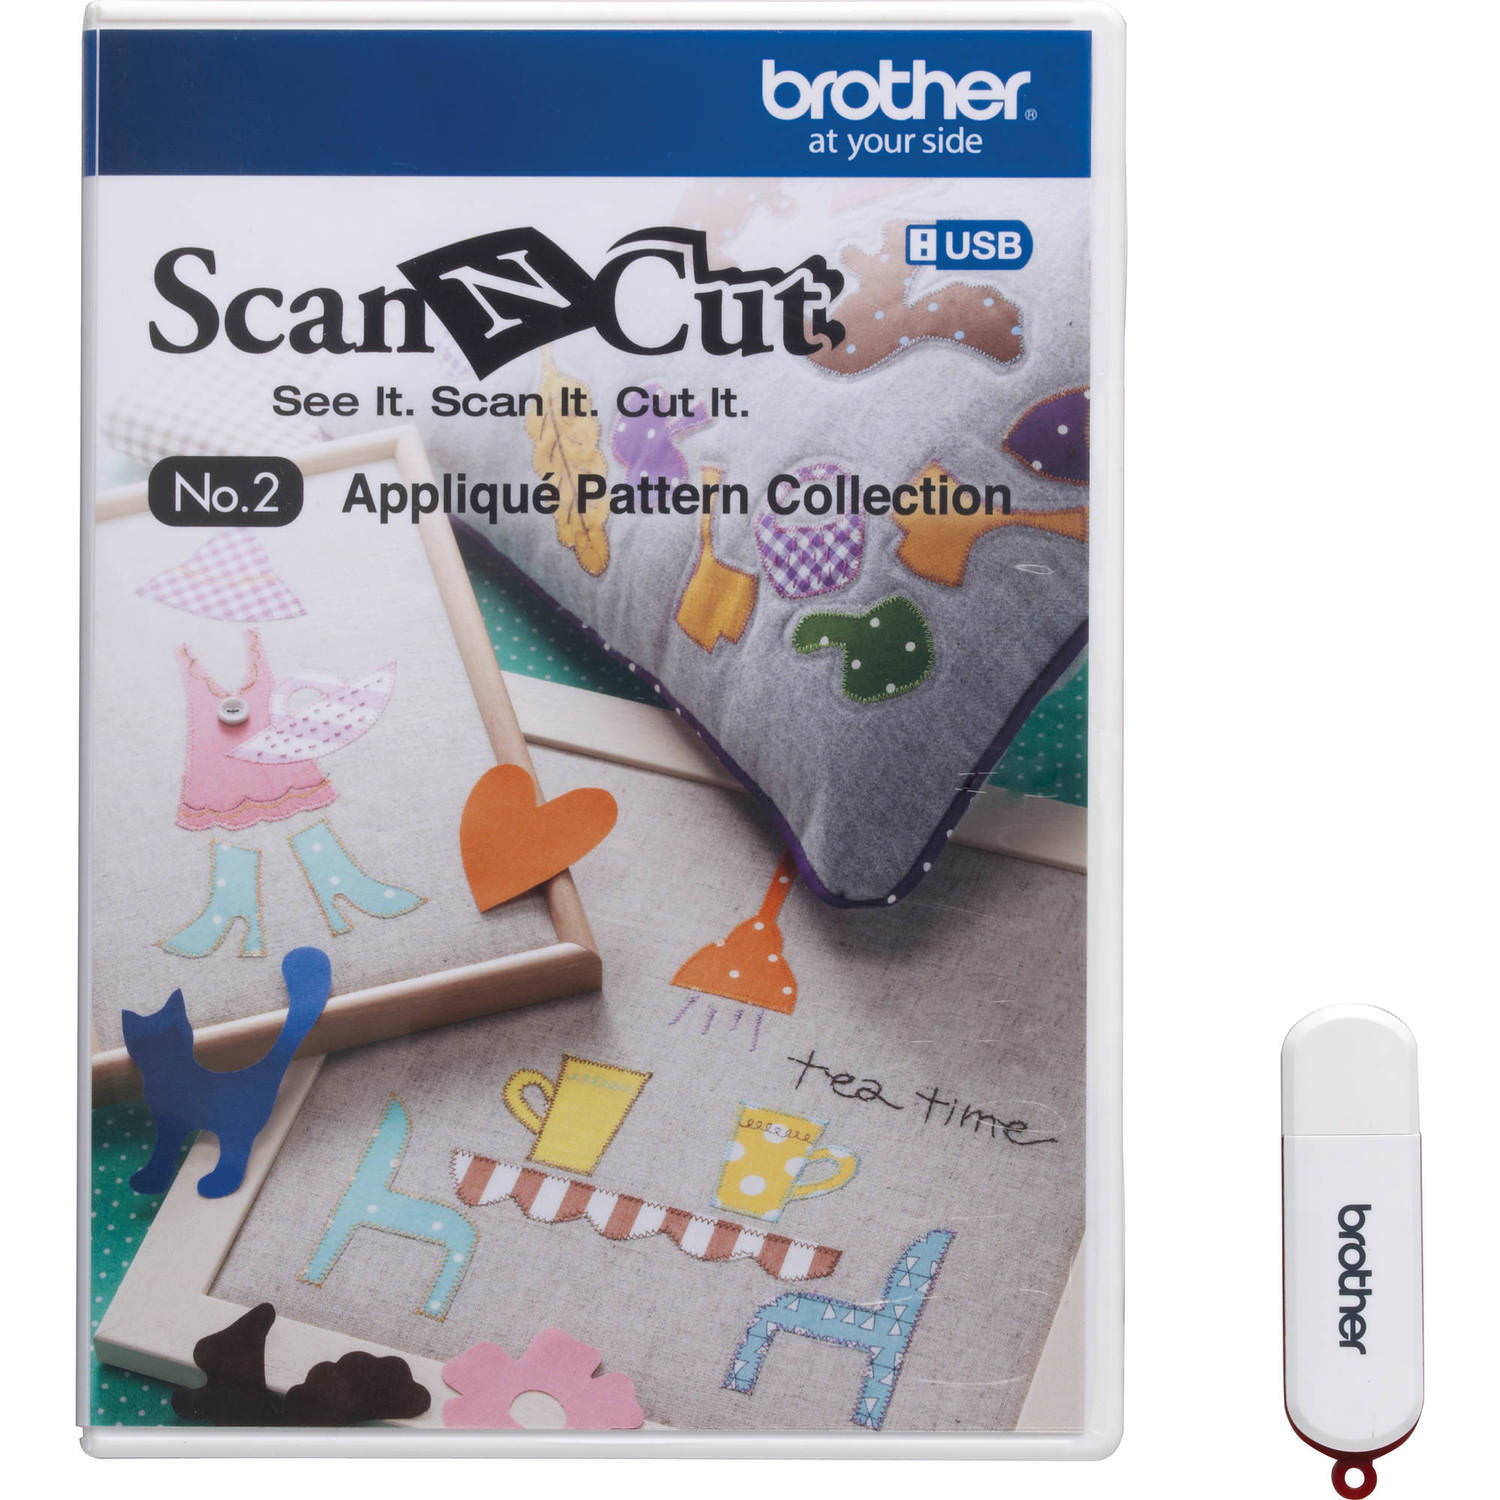 Brother ScanNCut USB No. 2 Applique Pattern Collection